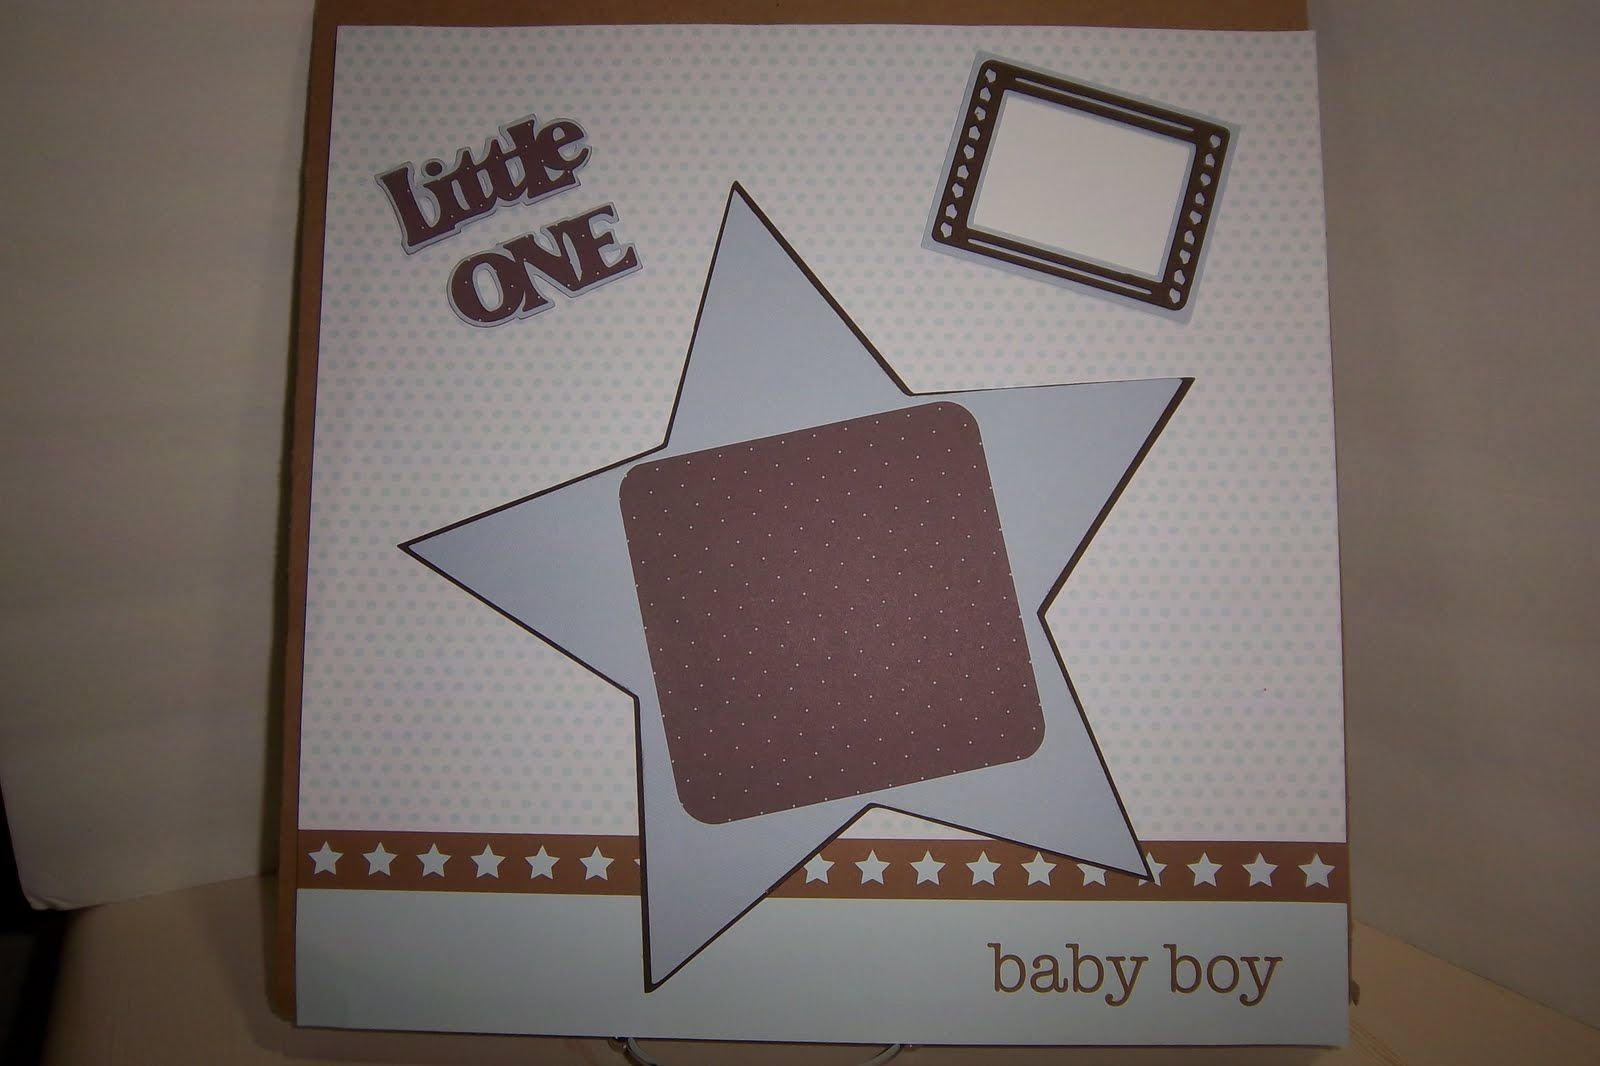 Baby Shower Scrapbook Page Layout Ideas Bing Images Baby